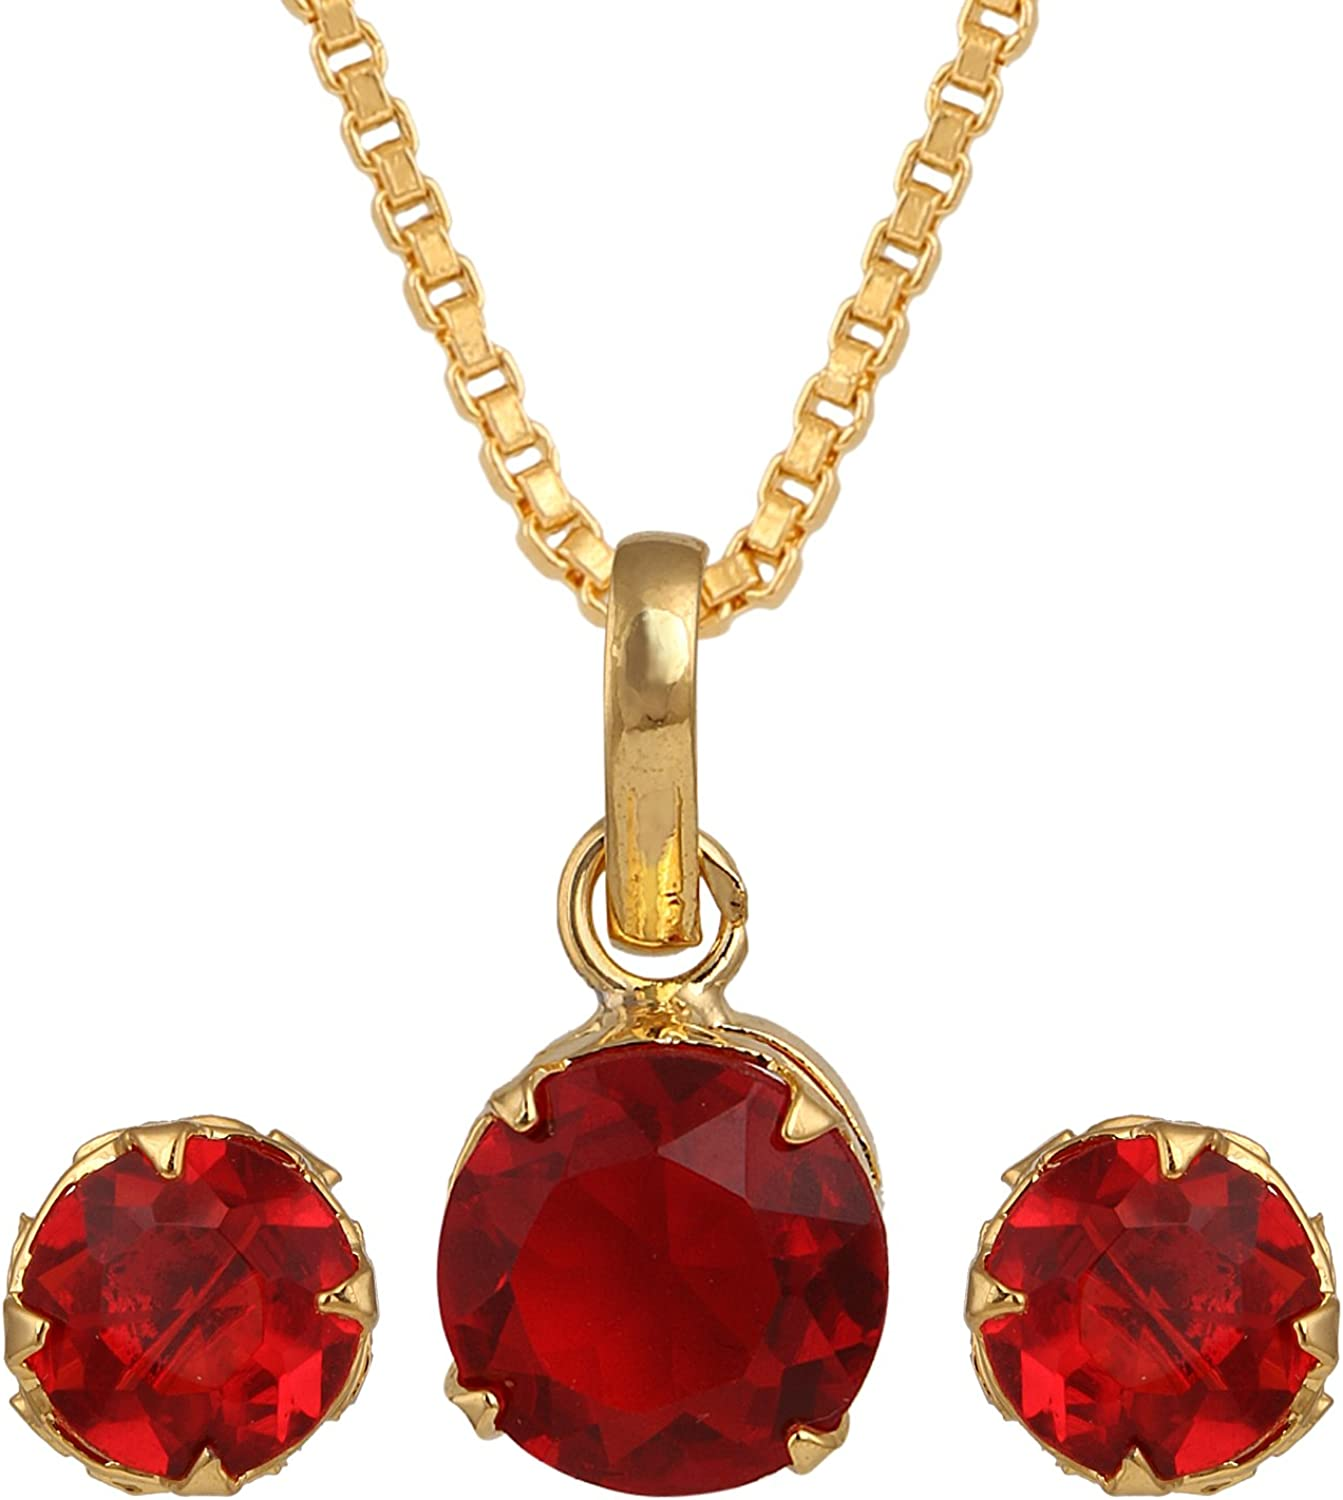 Efulgenz Blood Red Round Cubic Zirconia Pendant Necklace and Earrings Jewelry Set for Women Girls Brides Bridesmaids